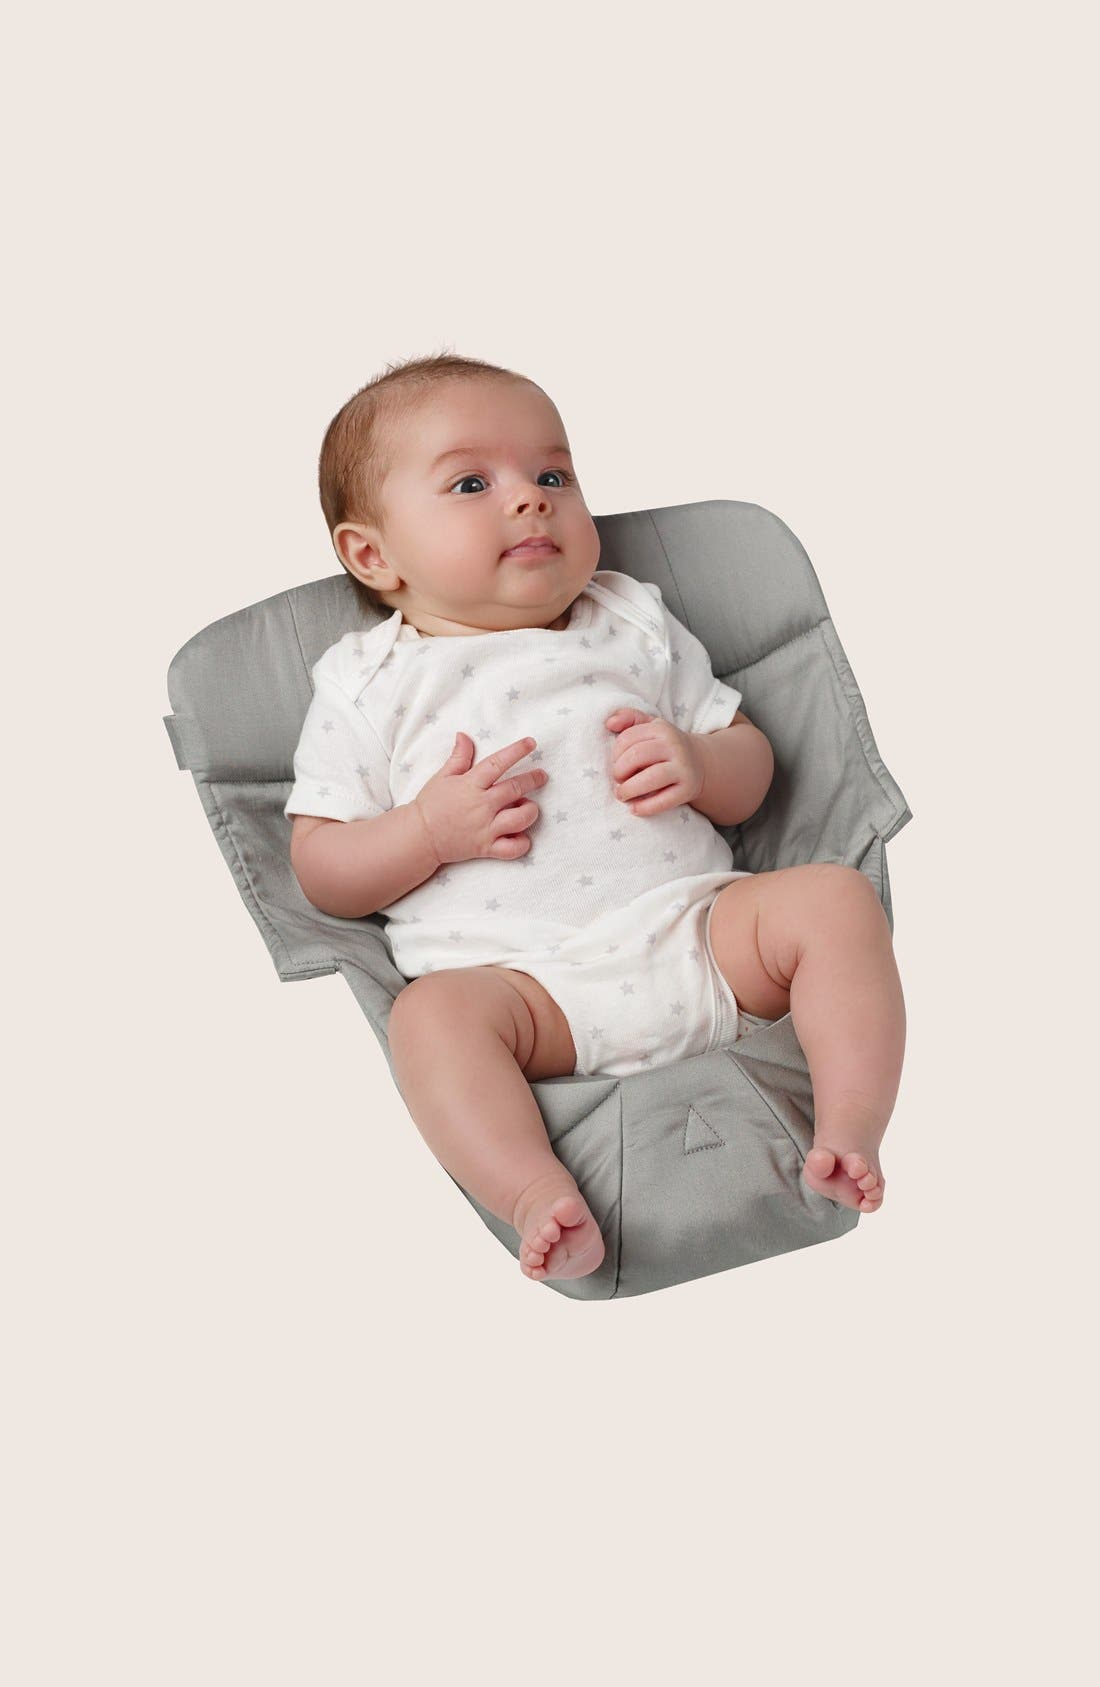 Alternate Image 1 Selected - ERGObaby 'Easy Snug' Cotton Poplin Baby Insert